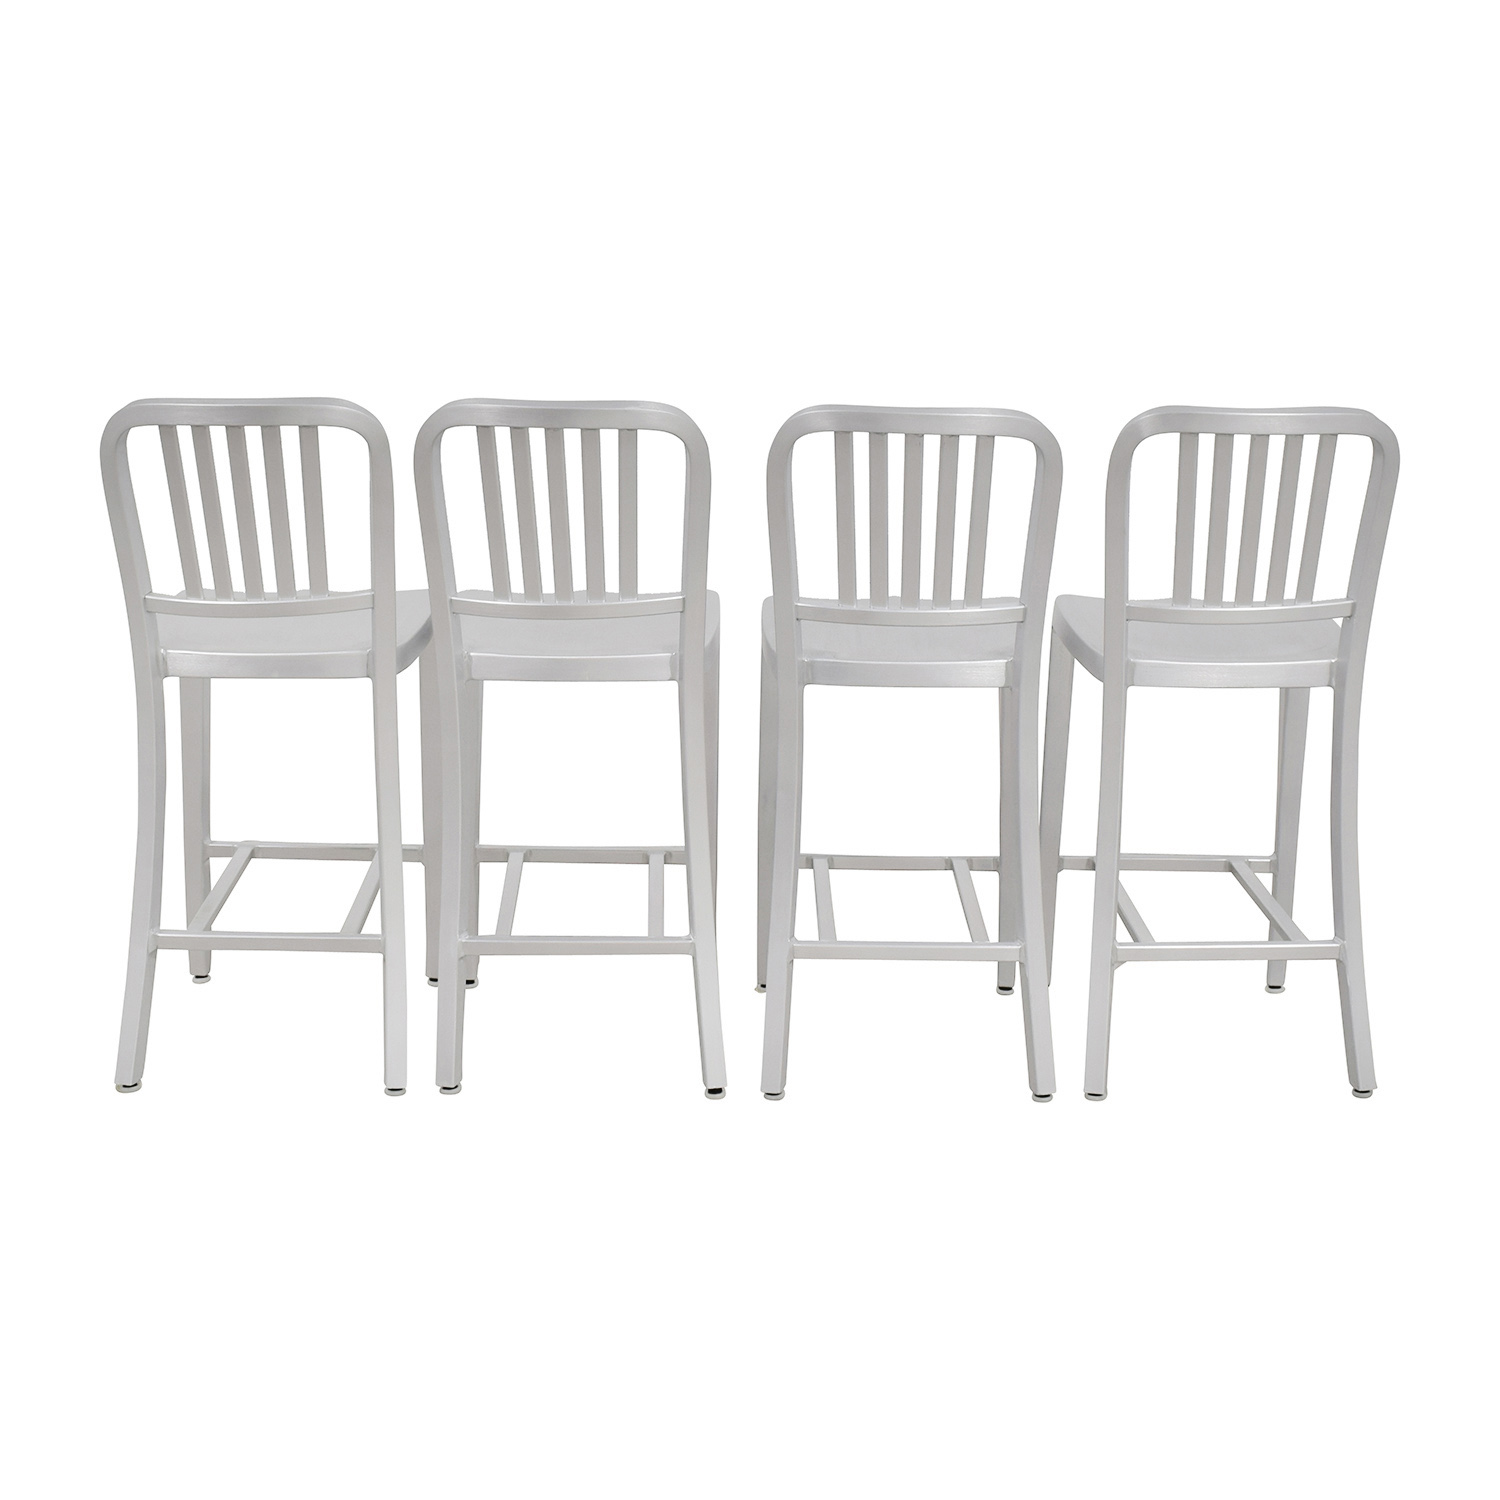 InMod InMod Aluminum Counter Stools Chairs